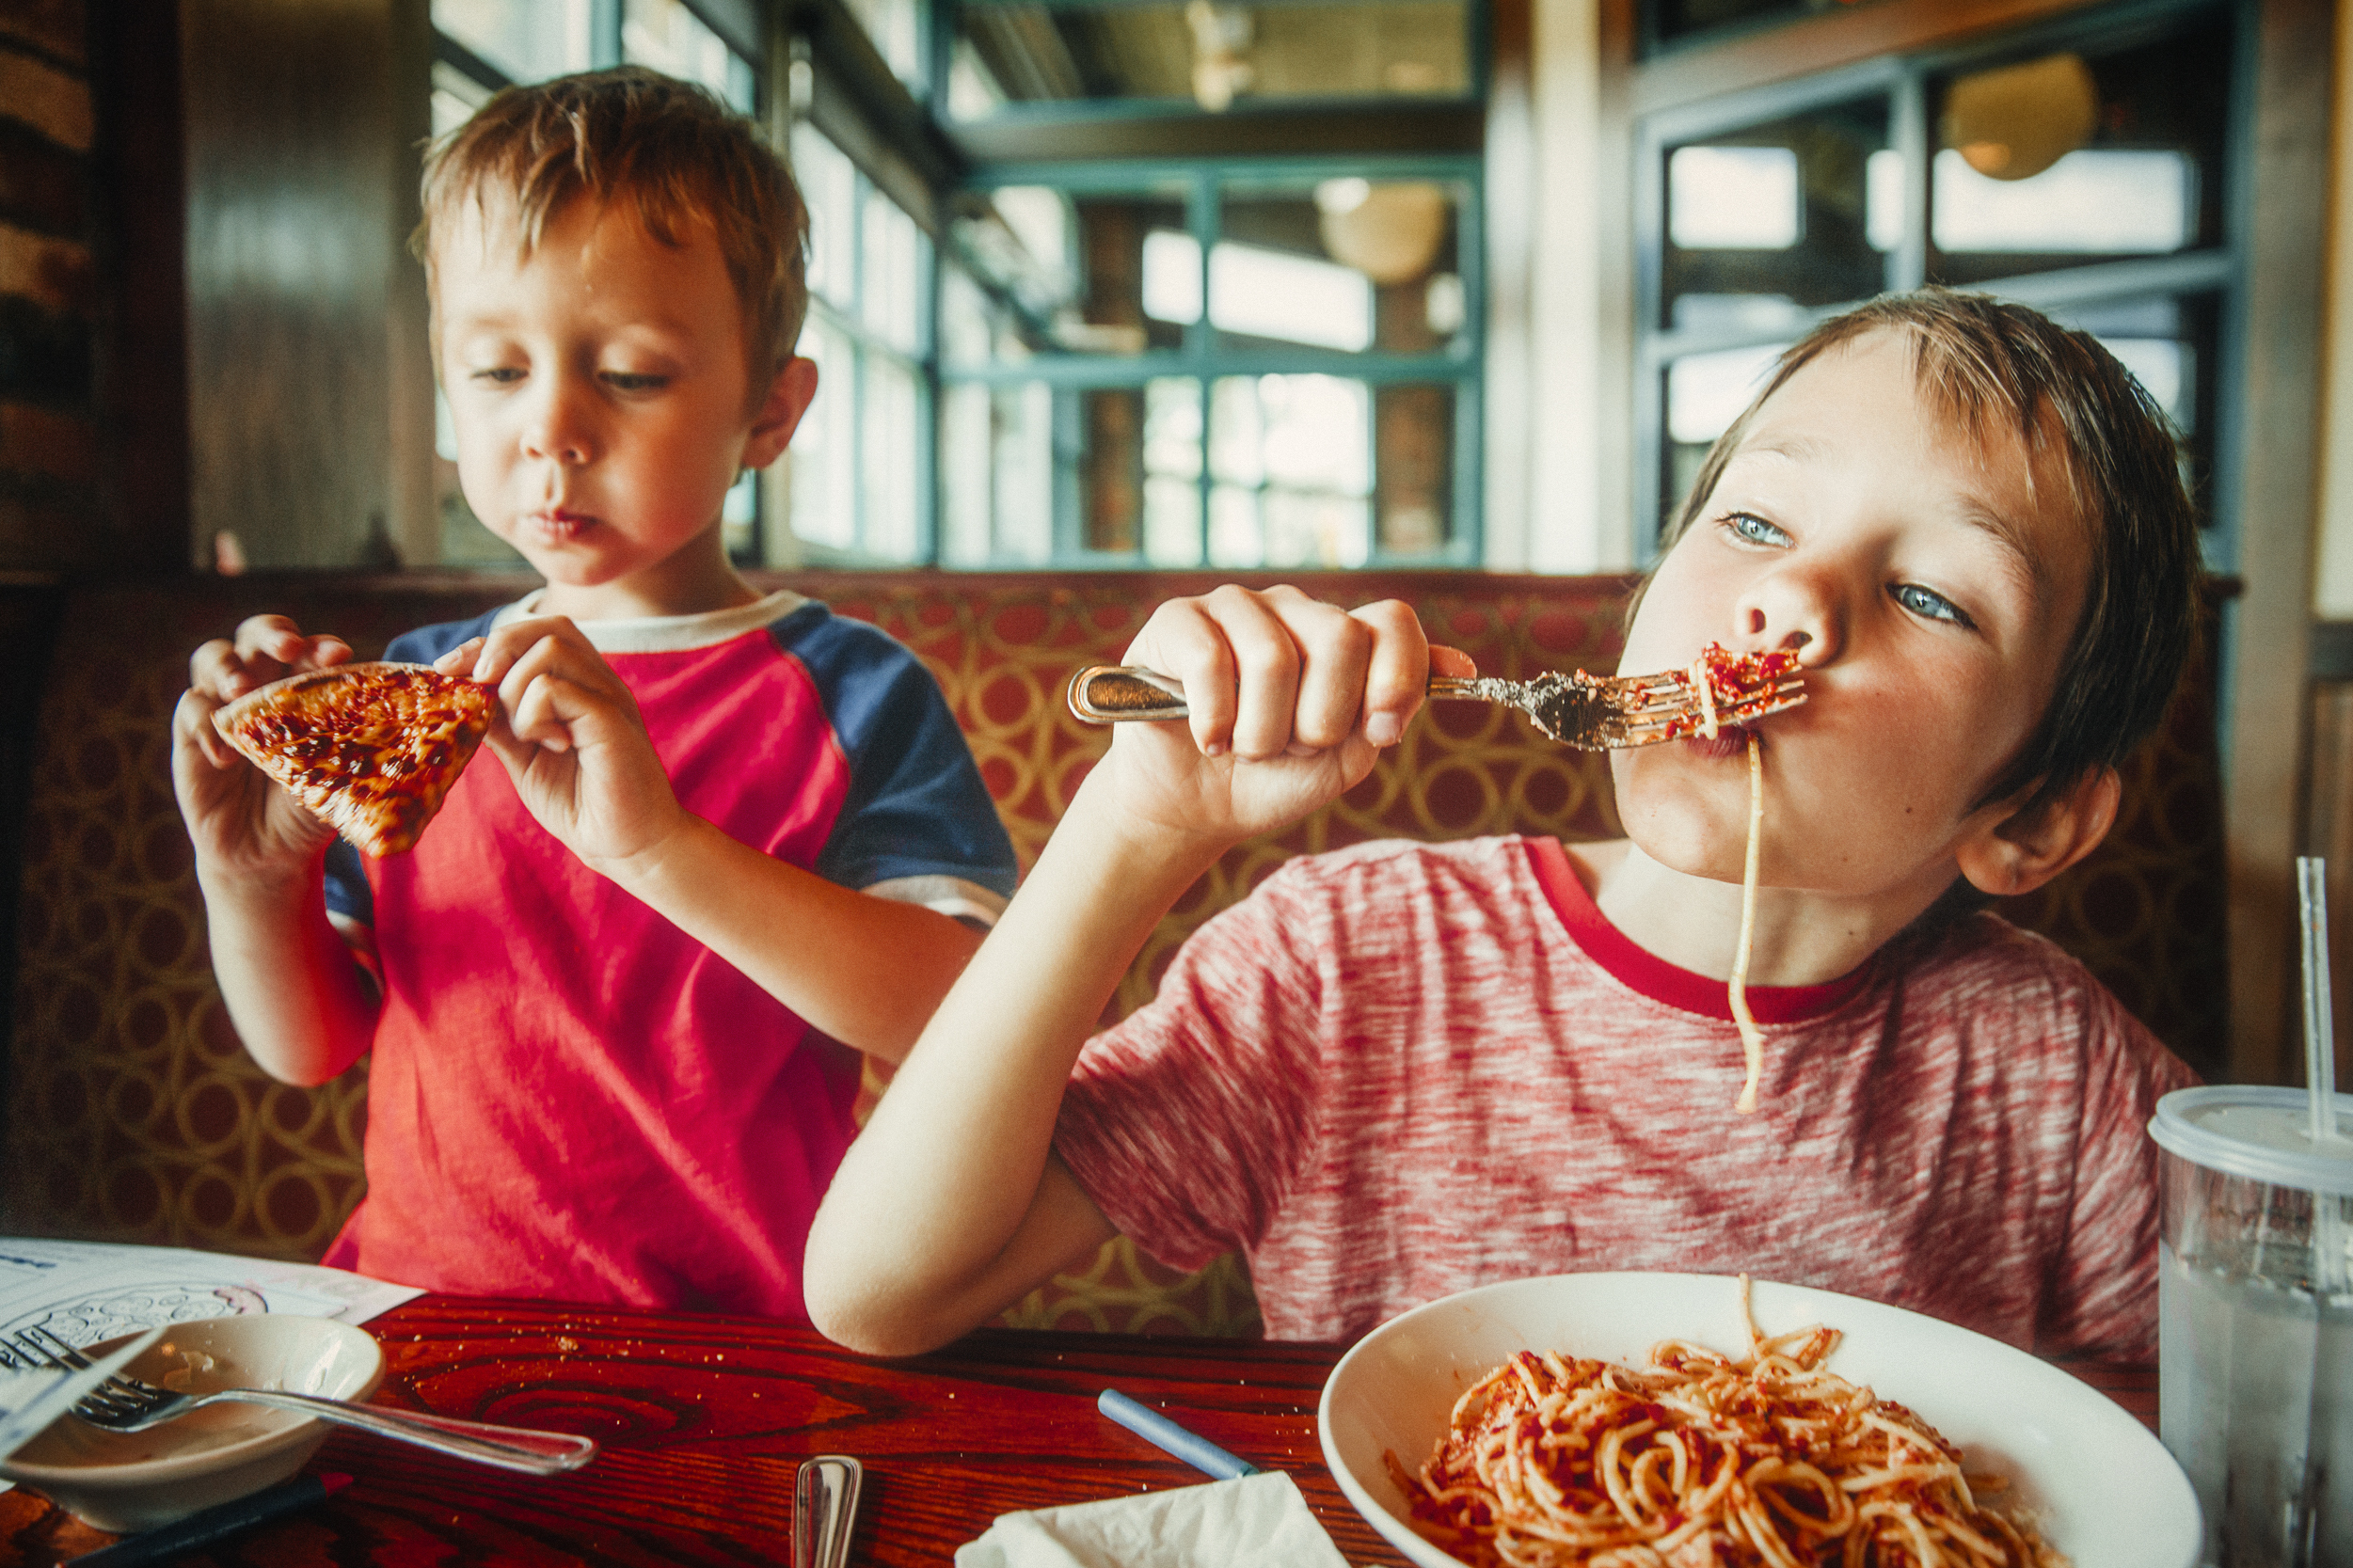 A picture of two kids eating pizza and spaghetti